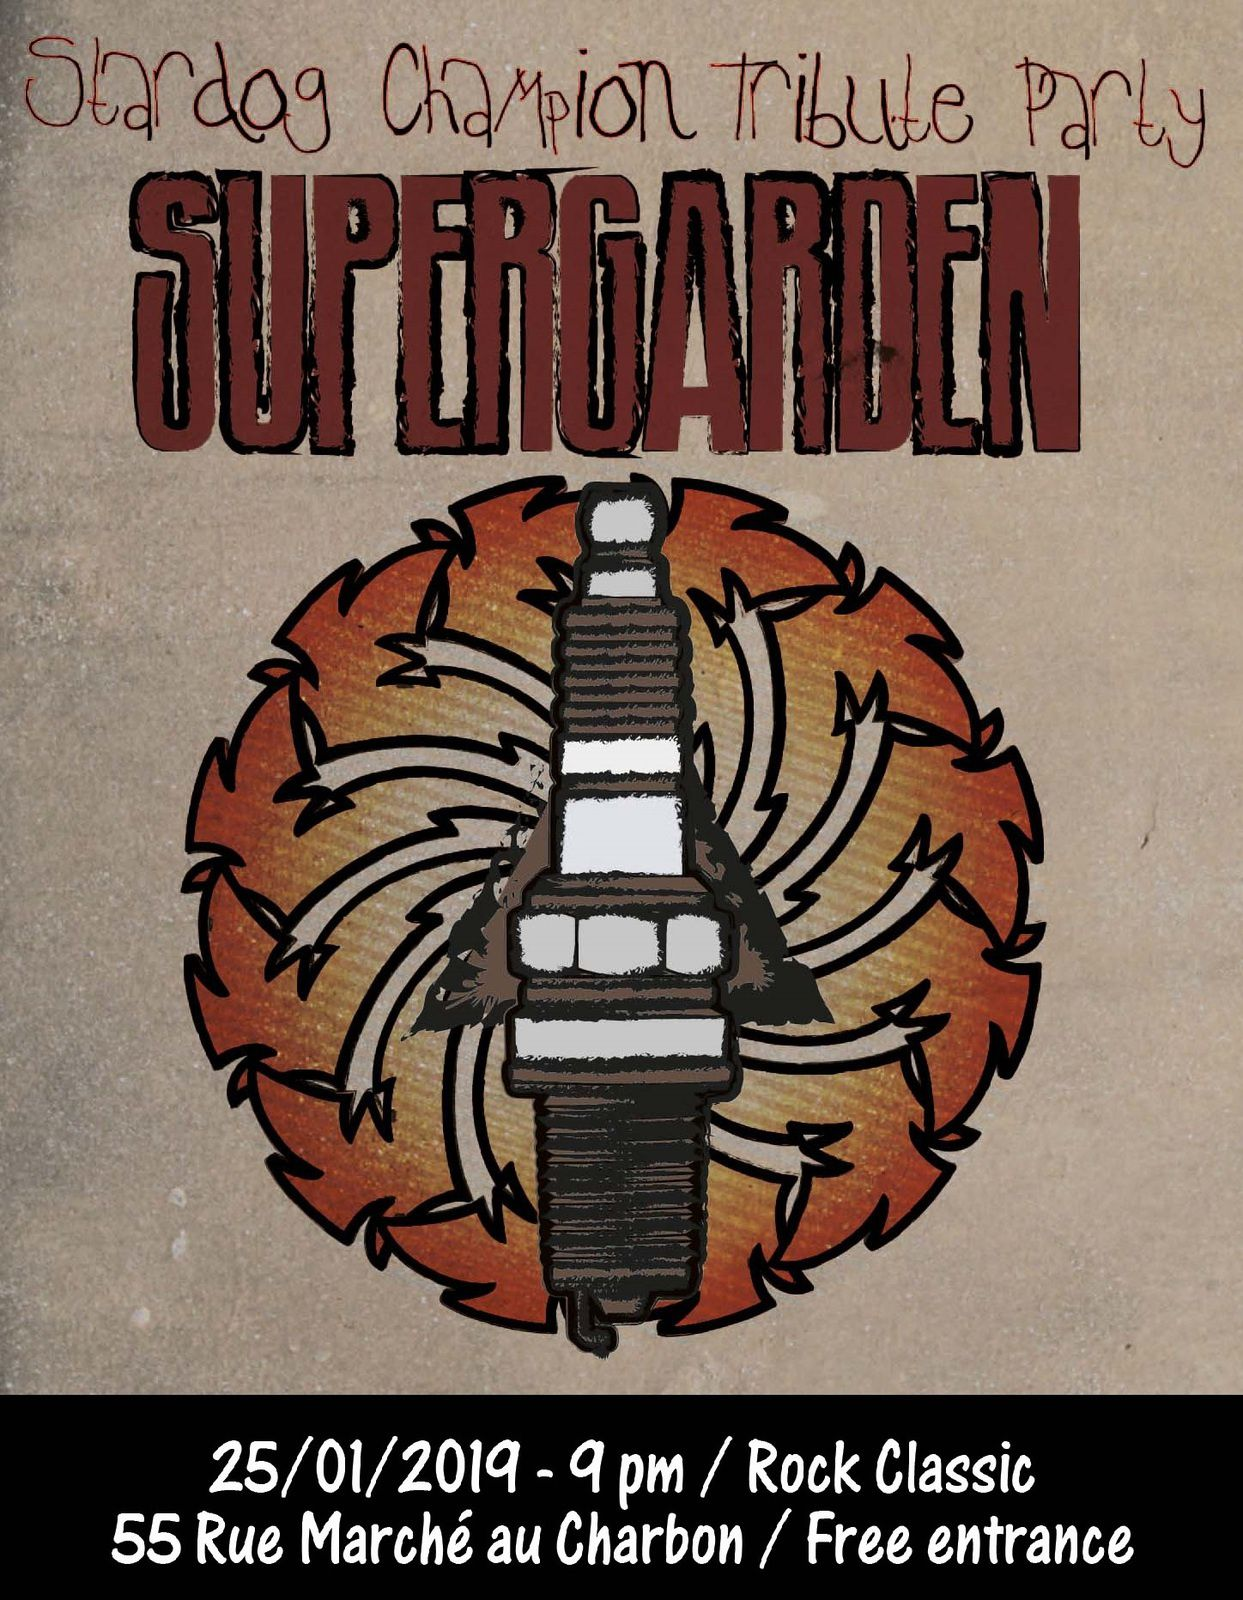 ▶ Supergarden (Soundgarden tribute band) au Rock Classic - 25/01/2019 - 21h00 - Entrée gratuite / Free entrance